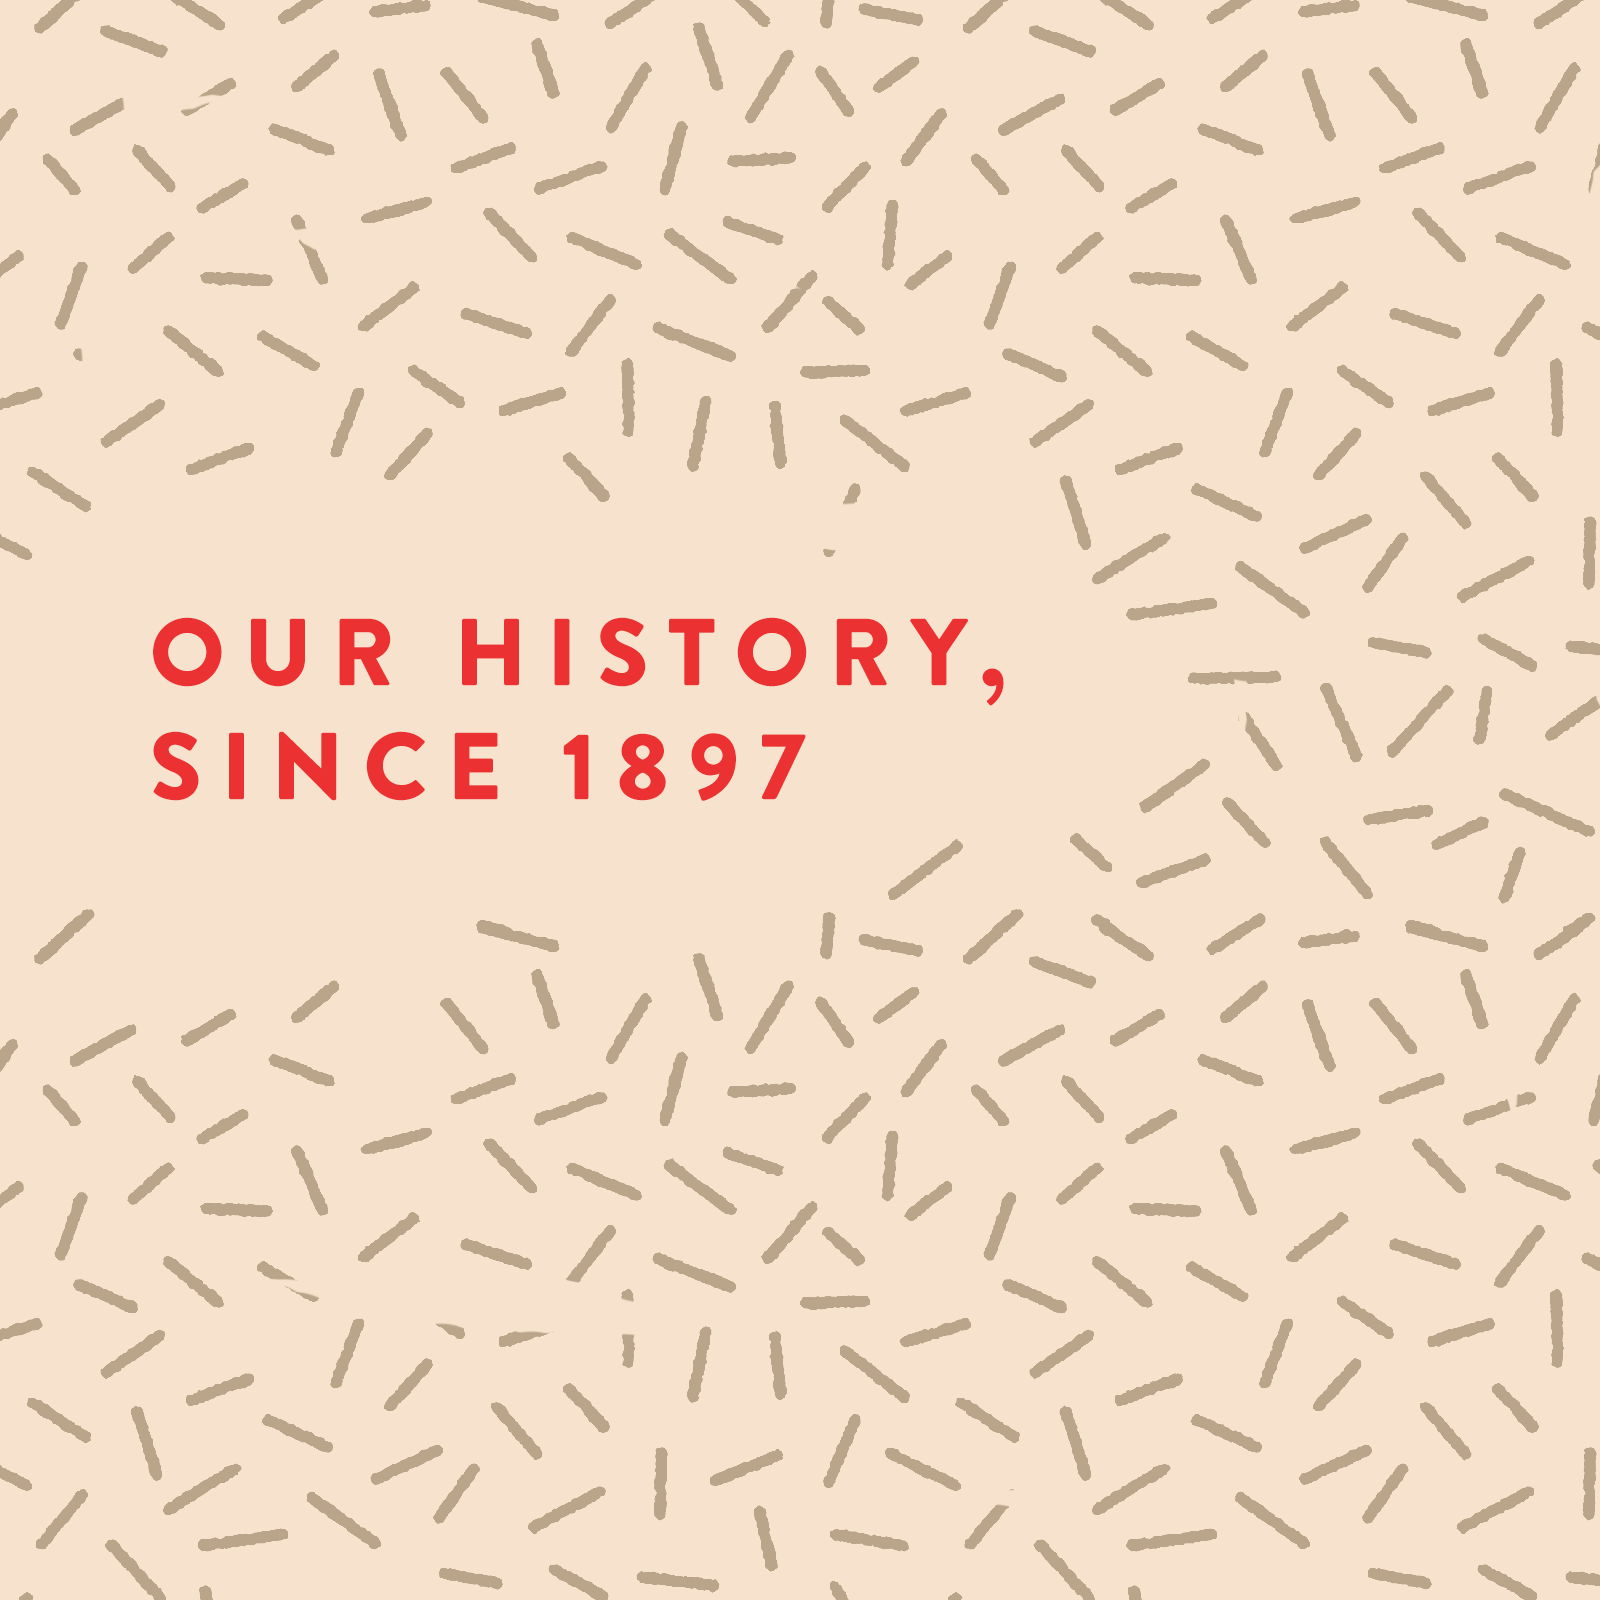 Our History, since 1897